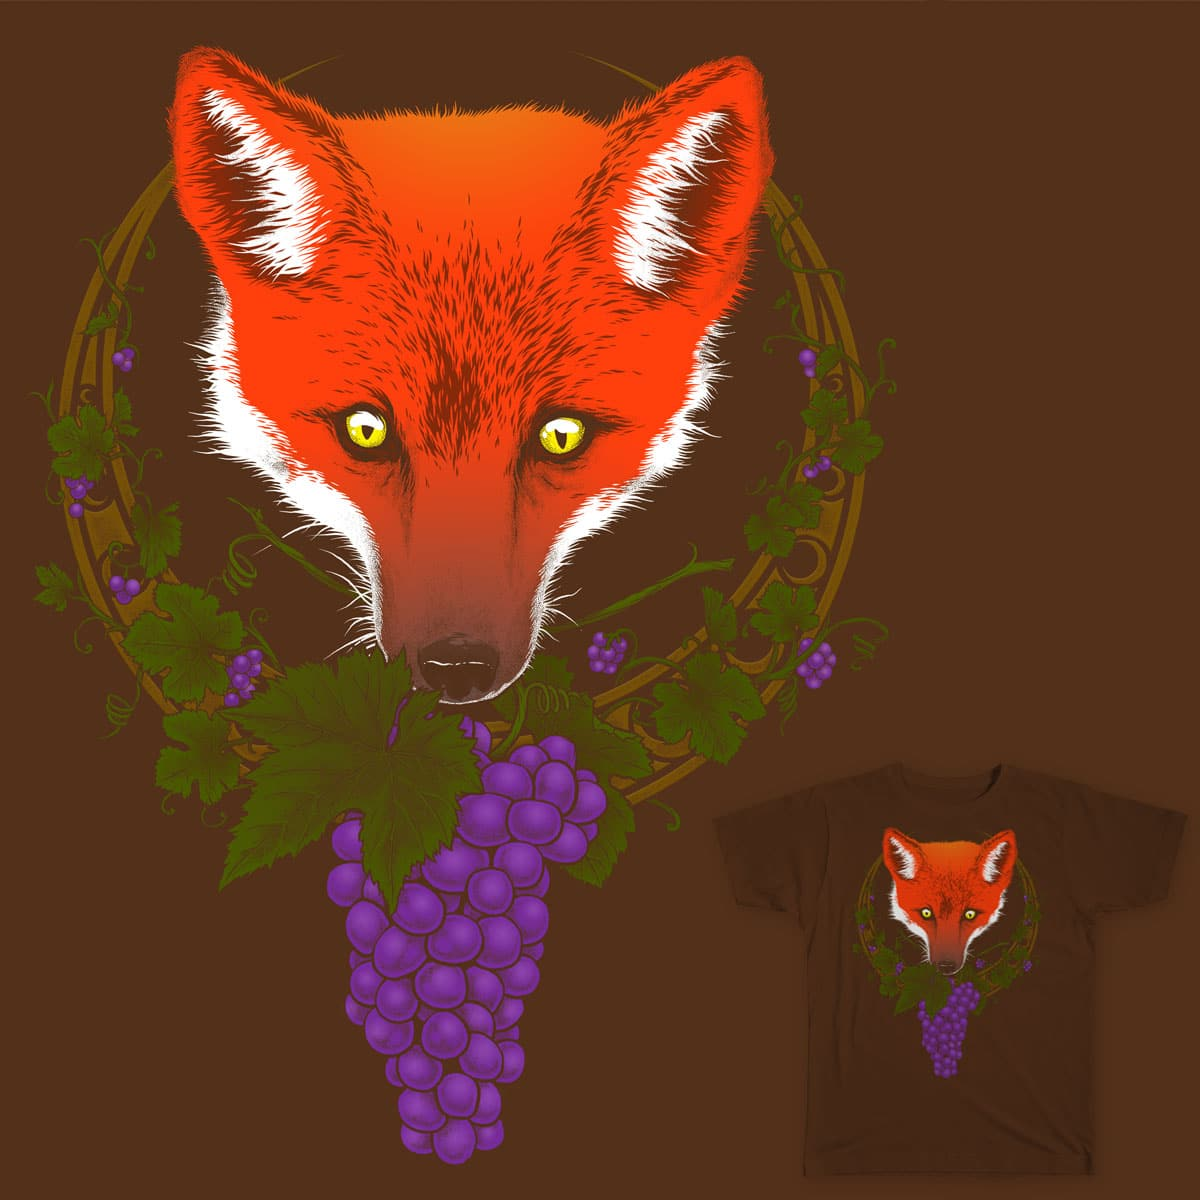 The Fox and the Grapes by scumbugg on Threadless